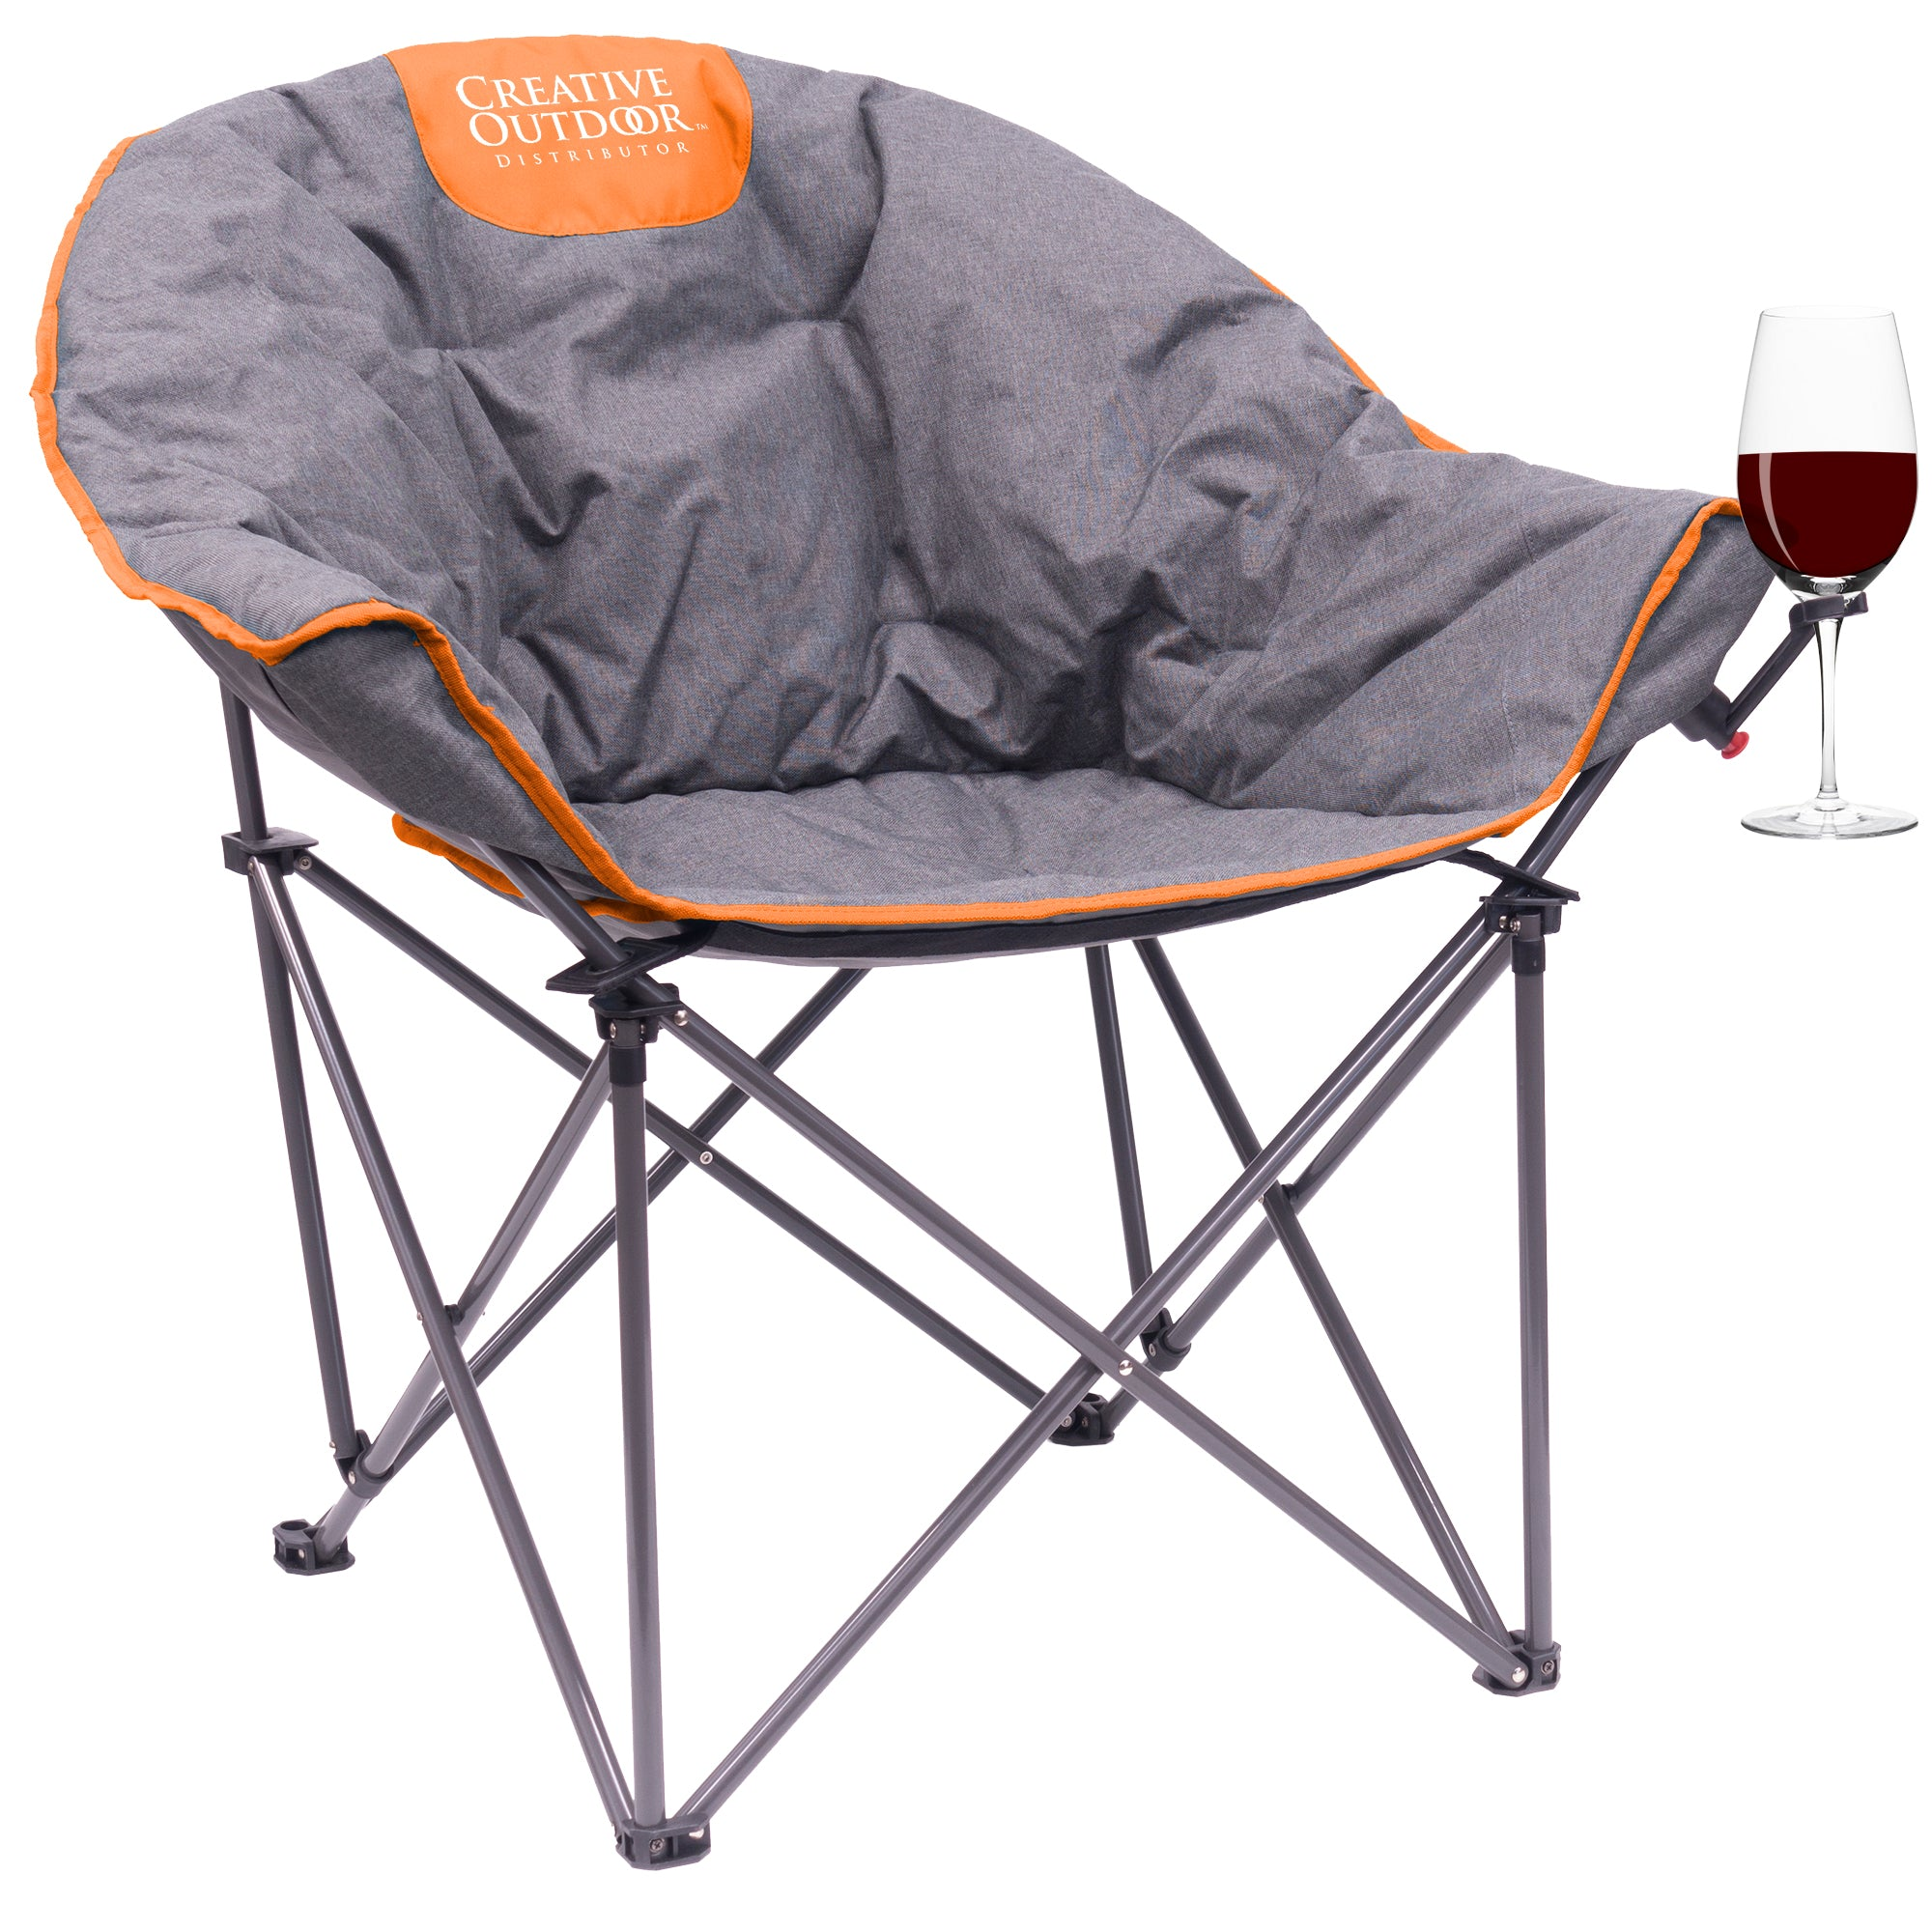 Padded Luxury Folding Wine Chair - Orange/Gray